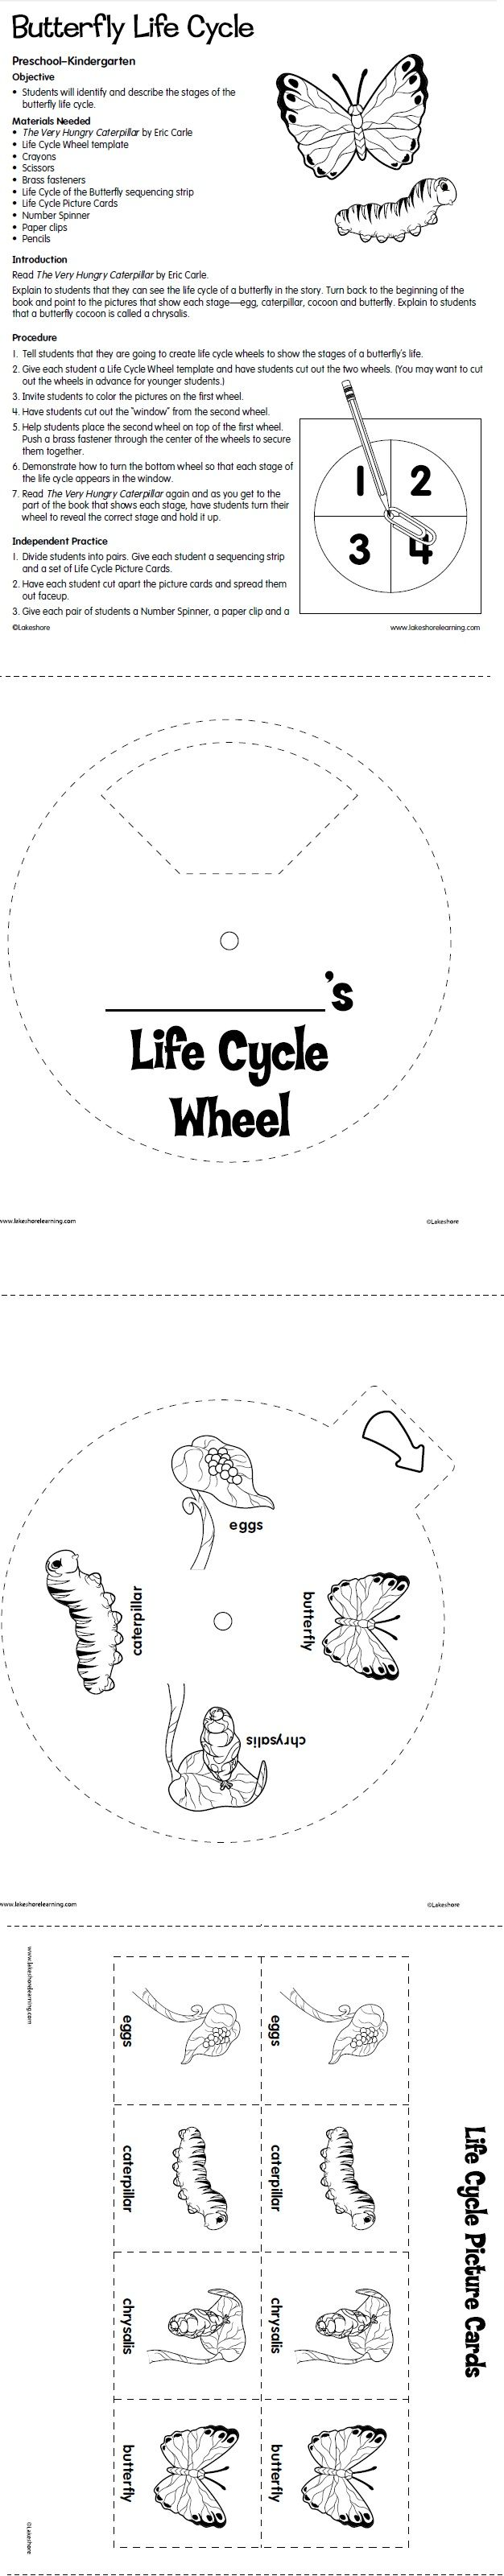 must see life plan template pins project life layouts butterfly life cycle lesson plan from lakeshore learning hello lesson plan for science class tomorrow